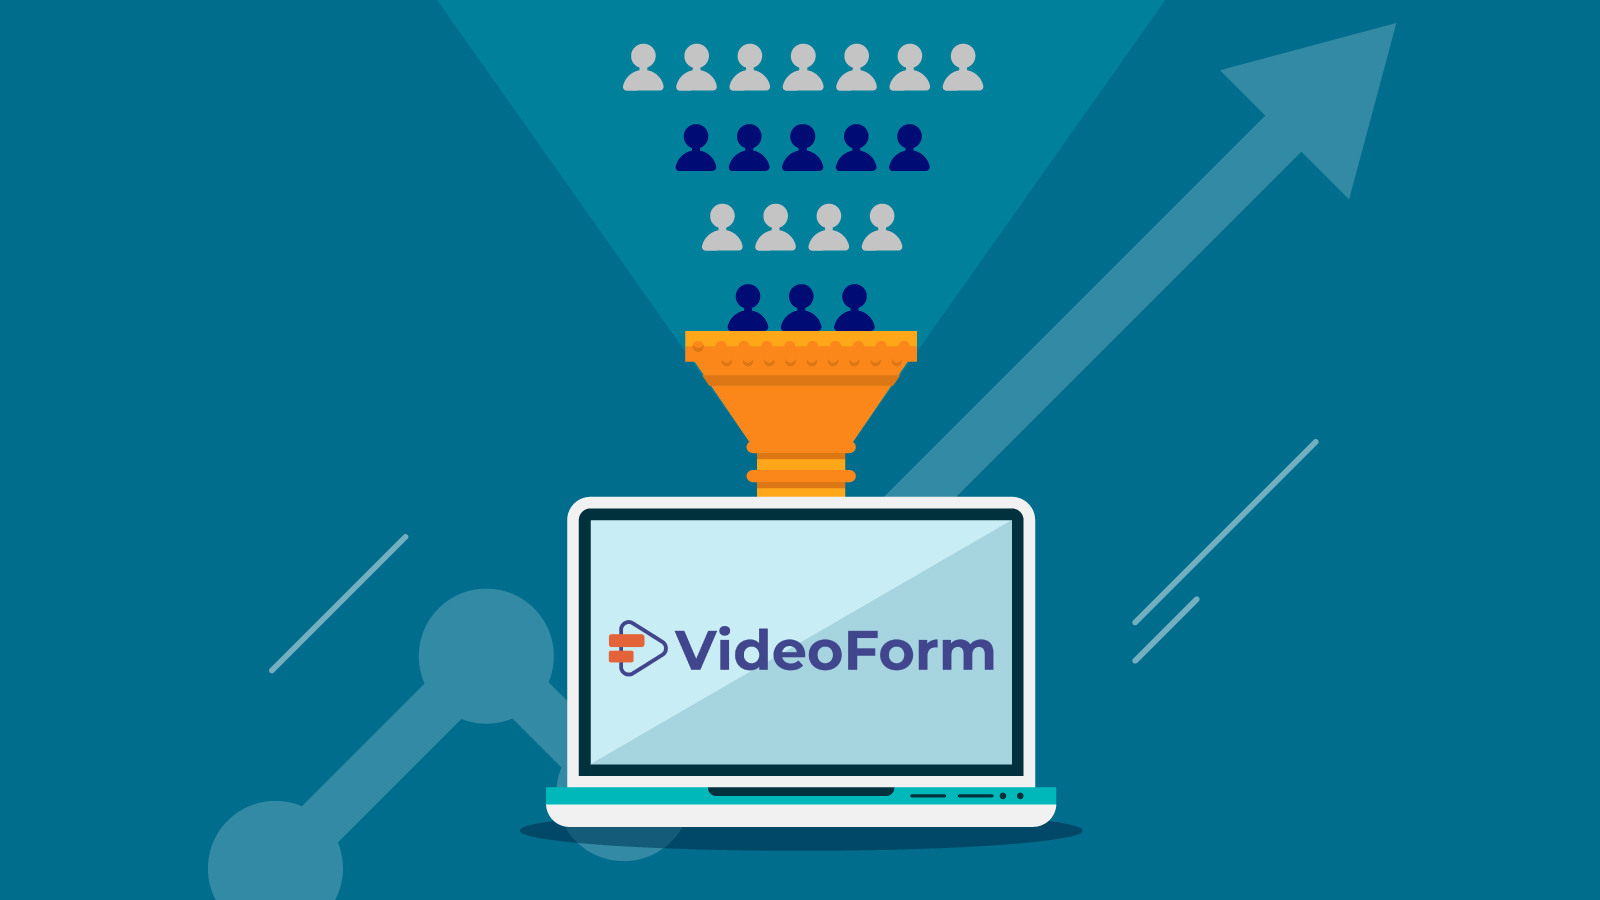 How VideoForm Can Help You Build A Watertight Marketing Funnel